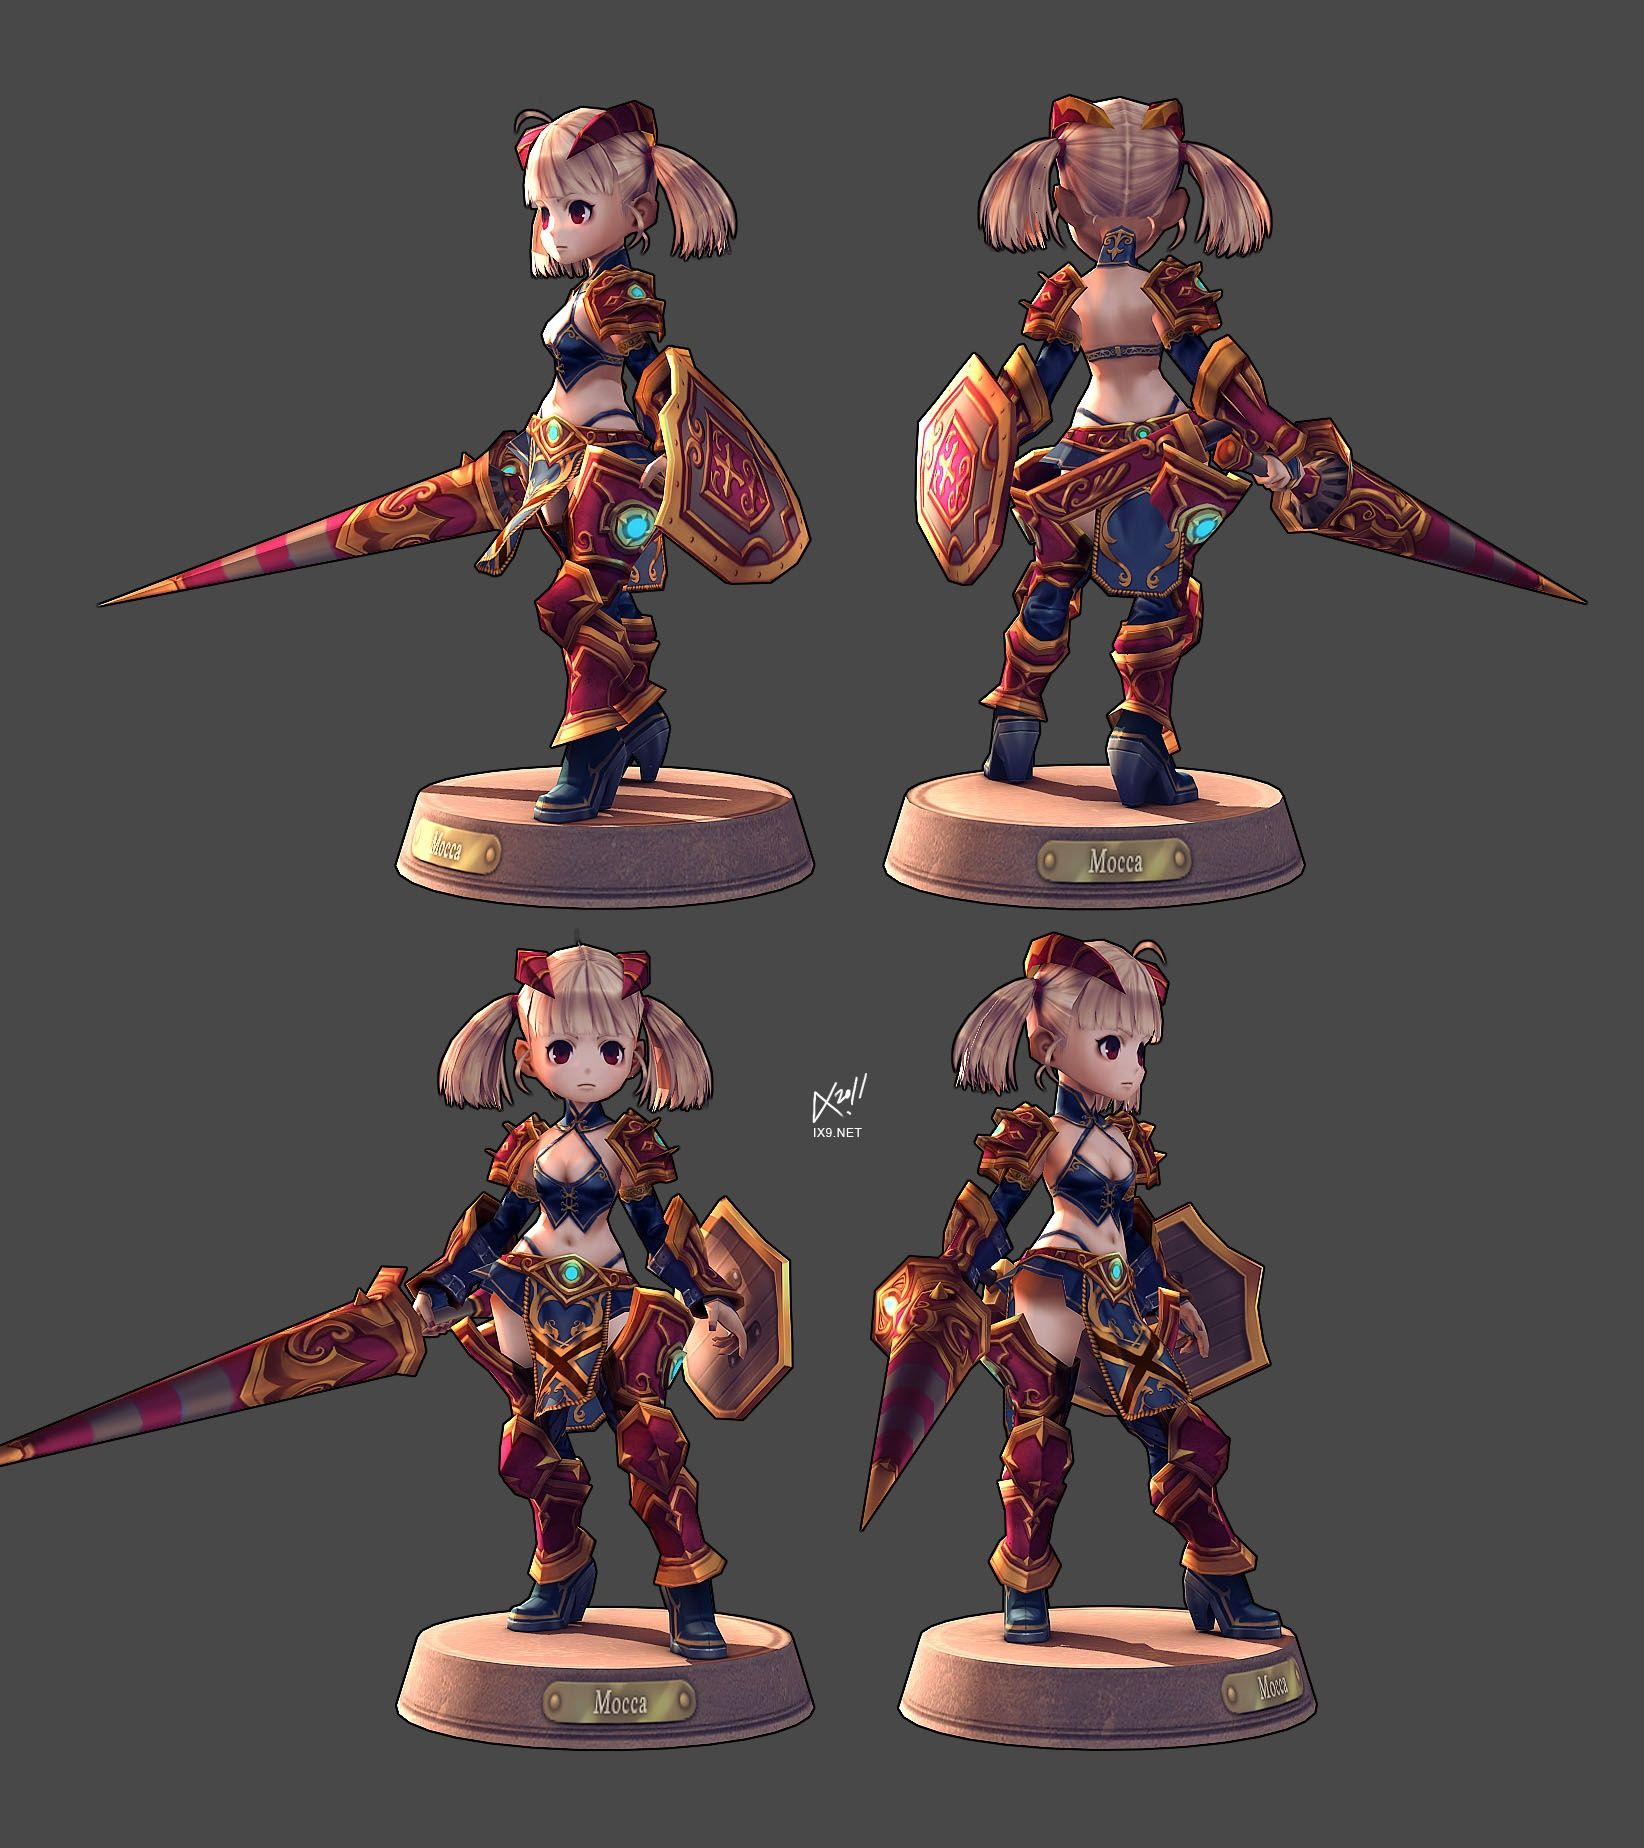 This is a very beautiful 3D low poly model! 캐릭터 아트